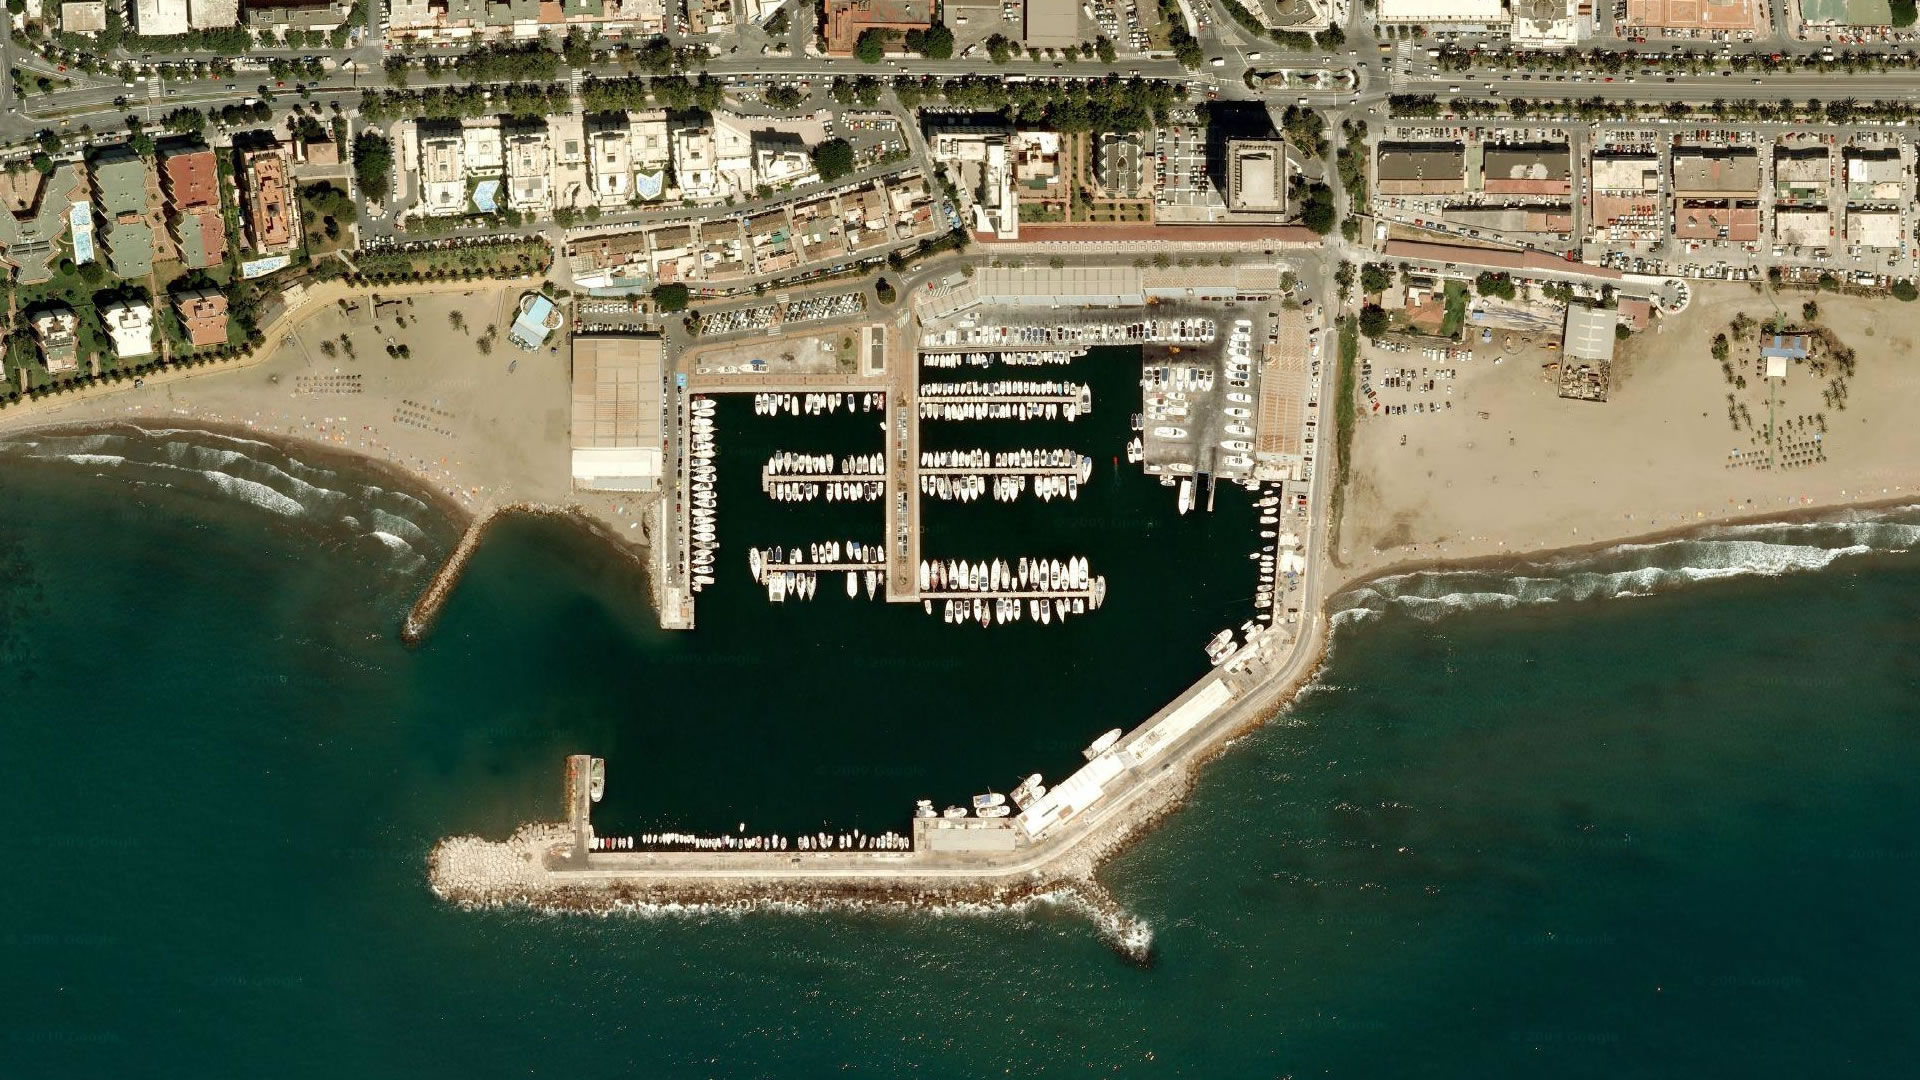 5 star hotel planned for Marbella Port